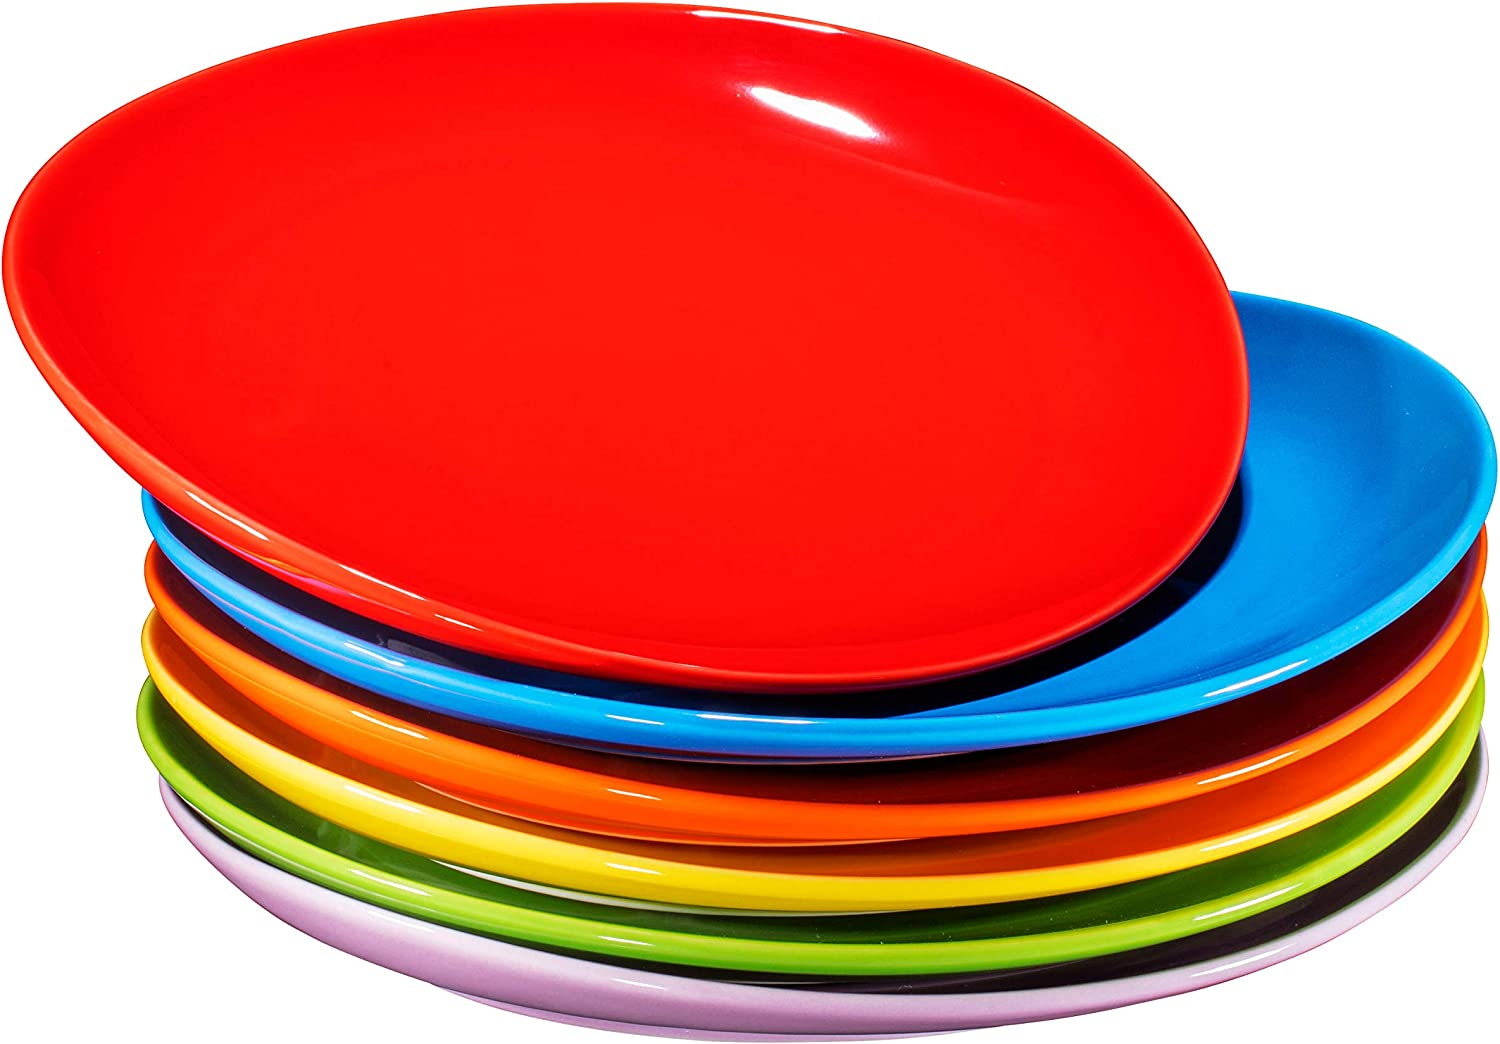 "Pro-Grade 11"" Curved Ceramic Restaurant Dinner Plates, Gradient Colors, Set of 6"